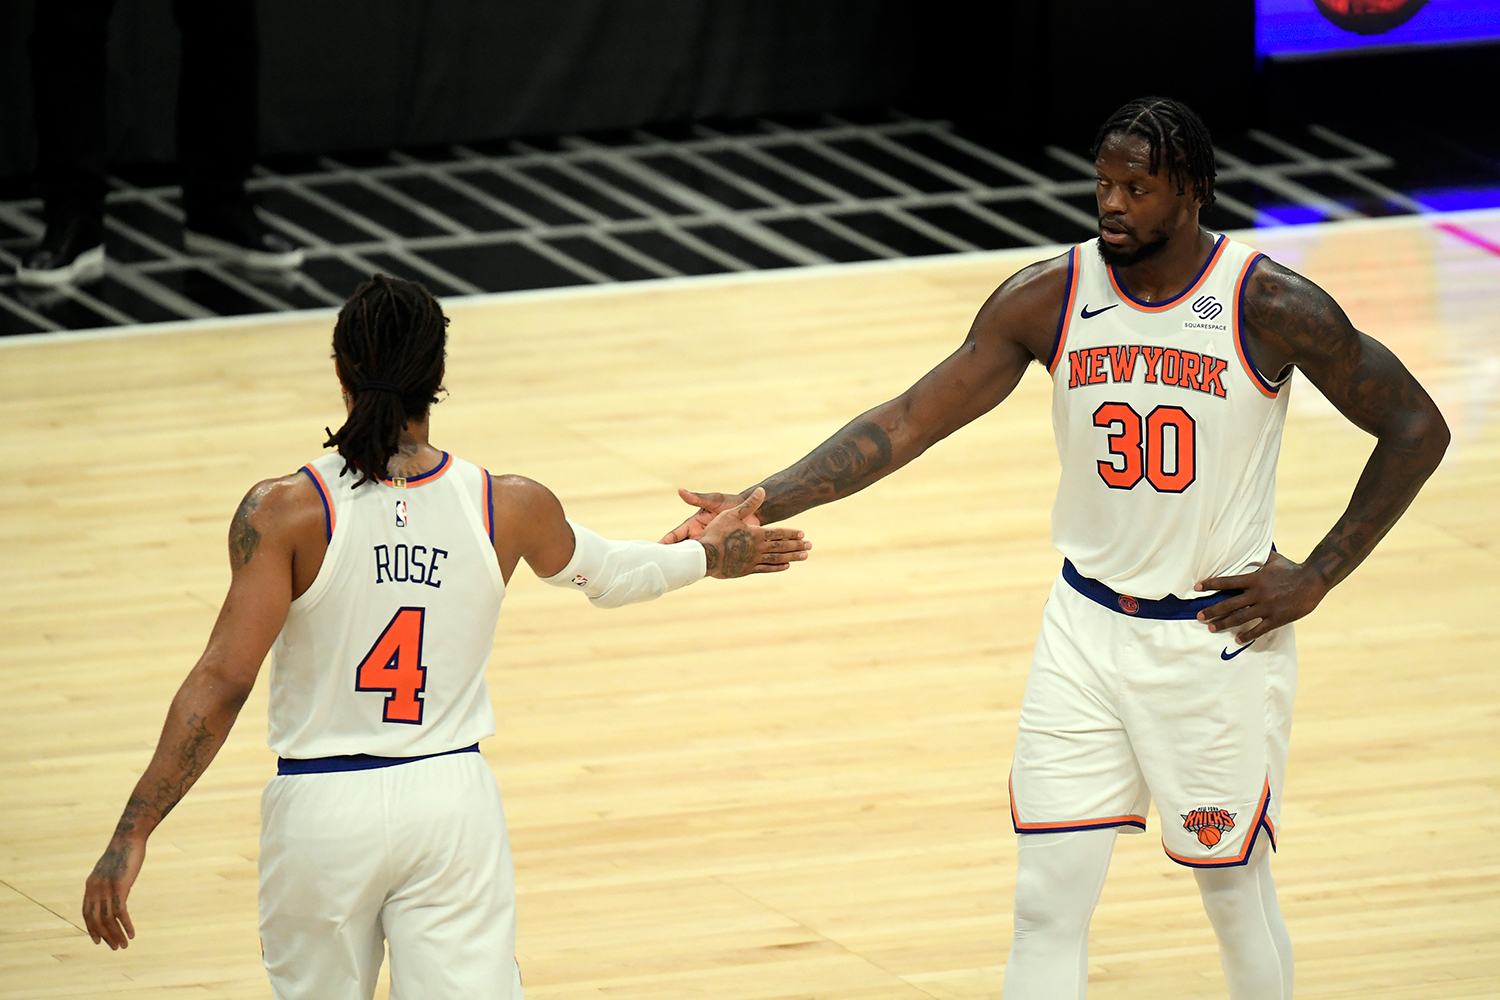 Julius Randle #30 of the New York Knicks and Derrick Rose #4 celebrate after defeating the Los Angeles Clippers